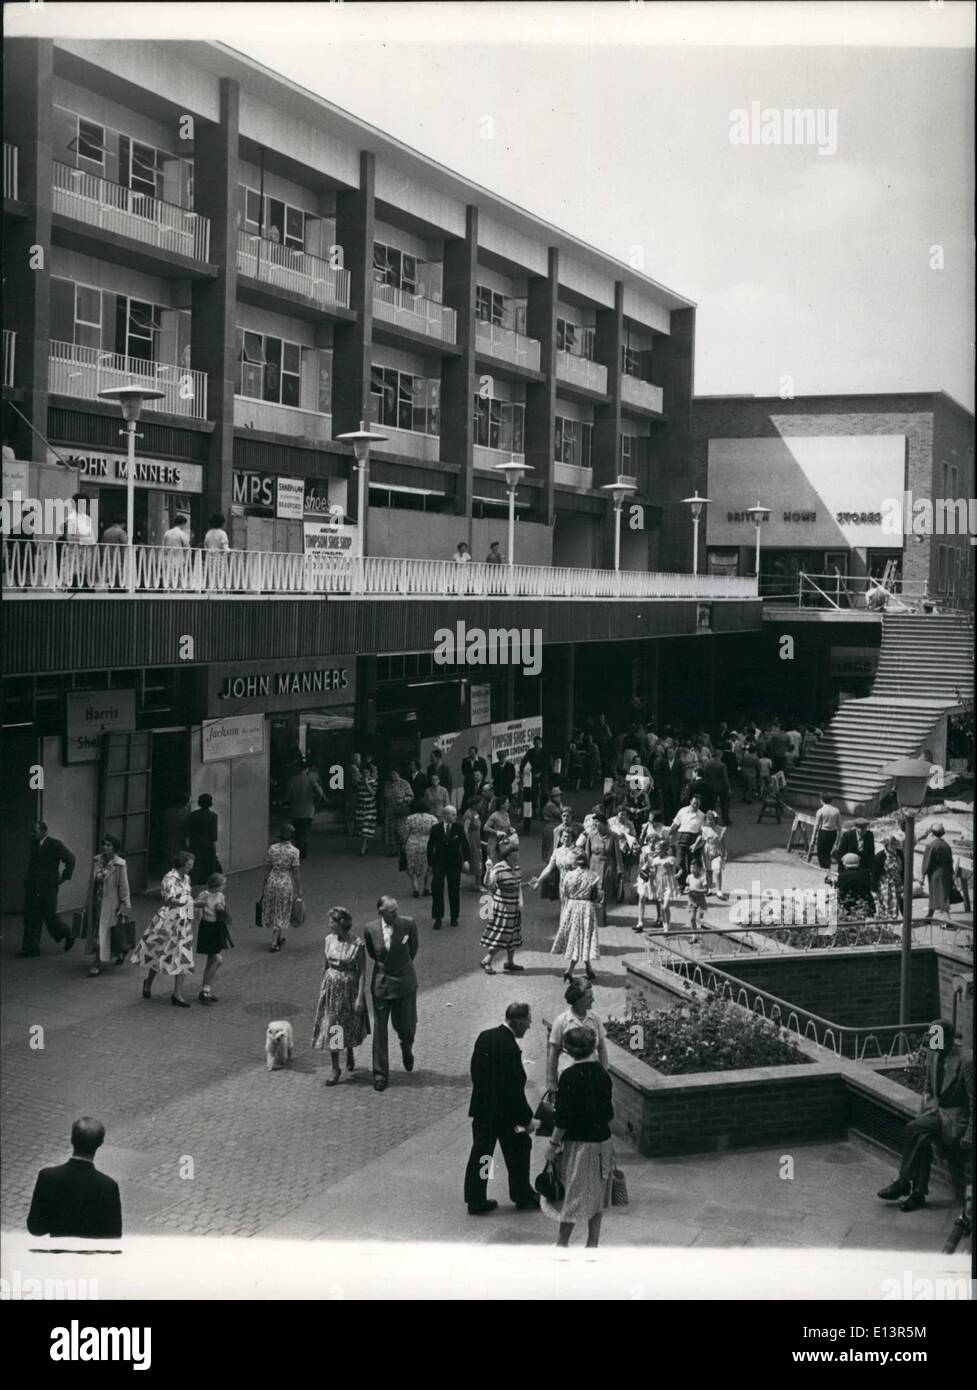 Mar. 22, 2012 - Residents and visitors enjoy the amenities of the Precincts shopping area at Coventry. In foreground in the picture are Jack albert and iceley Courteidge taking their poodle for an airing. - Stock Image